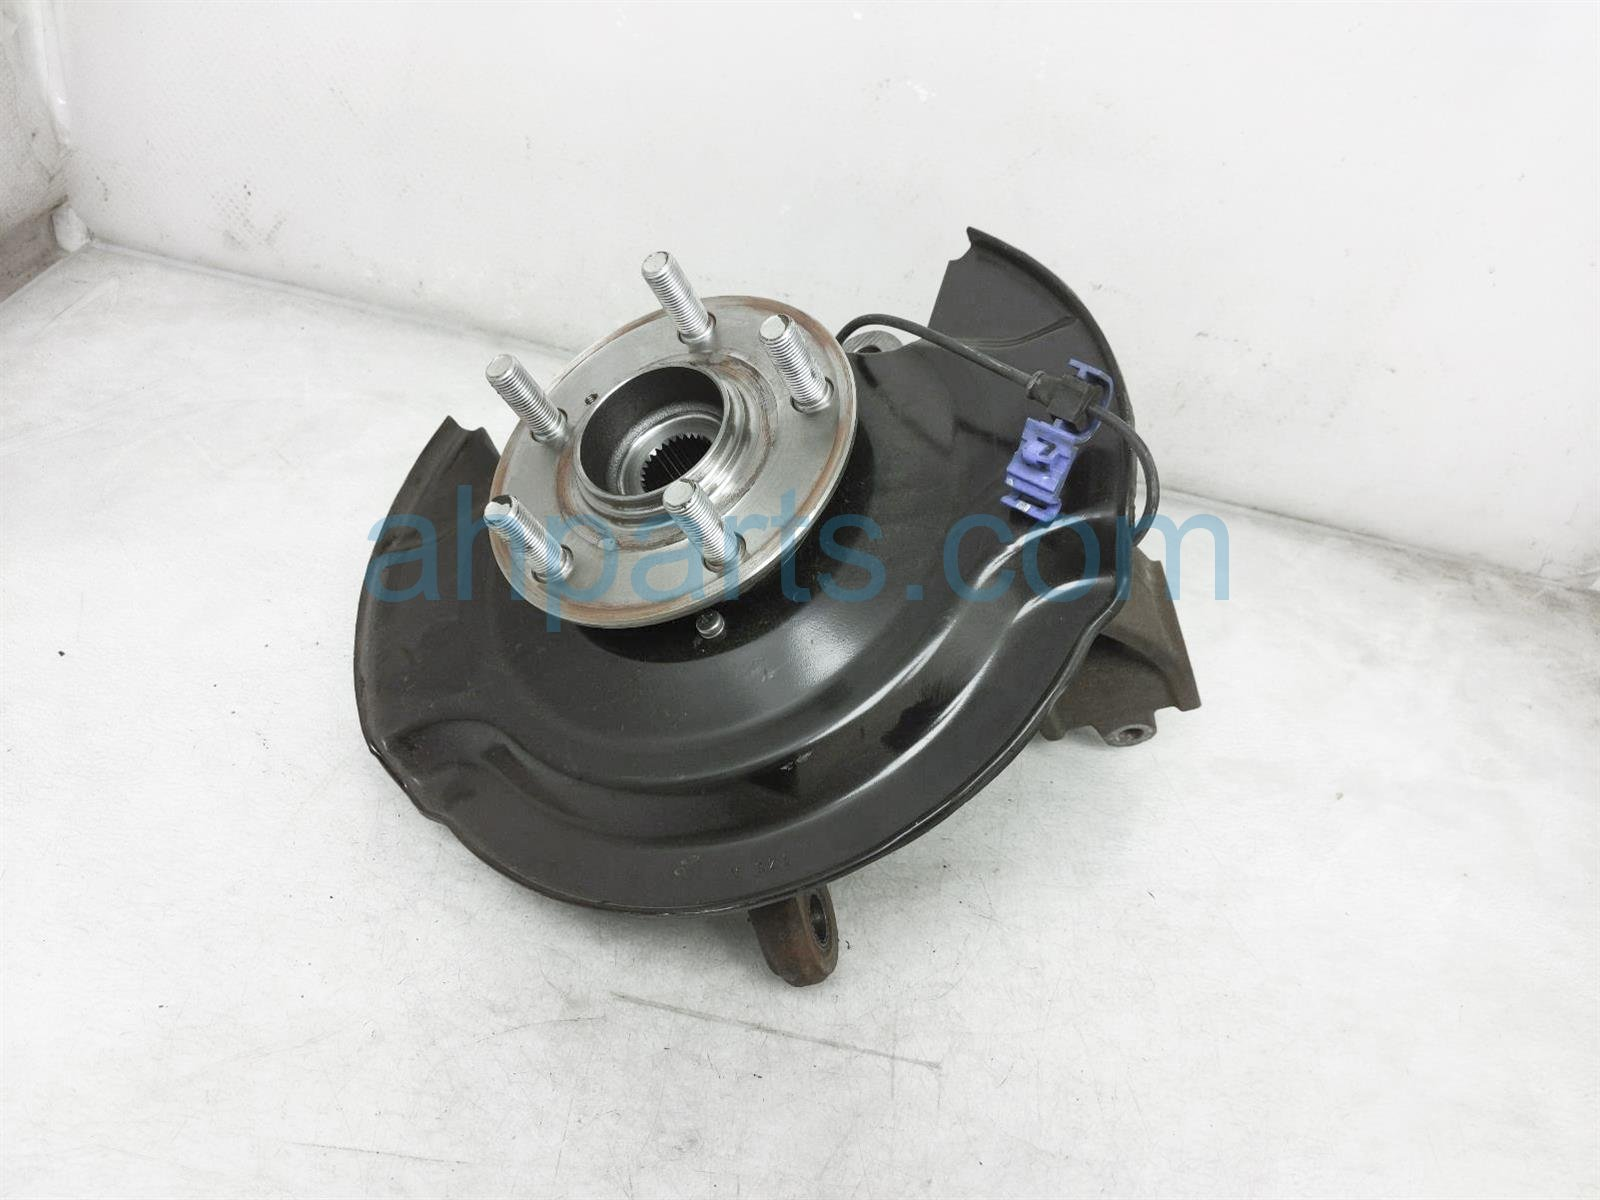 2019 Honda Pilot Front Driver Spindle Knuckle Hub 51216 TZ5 A00 Replacement